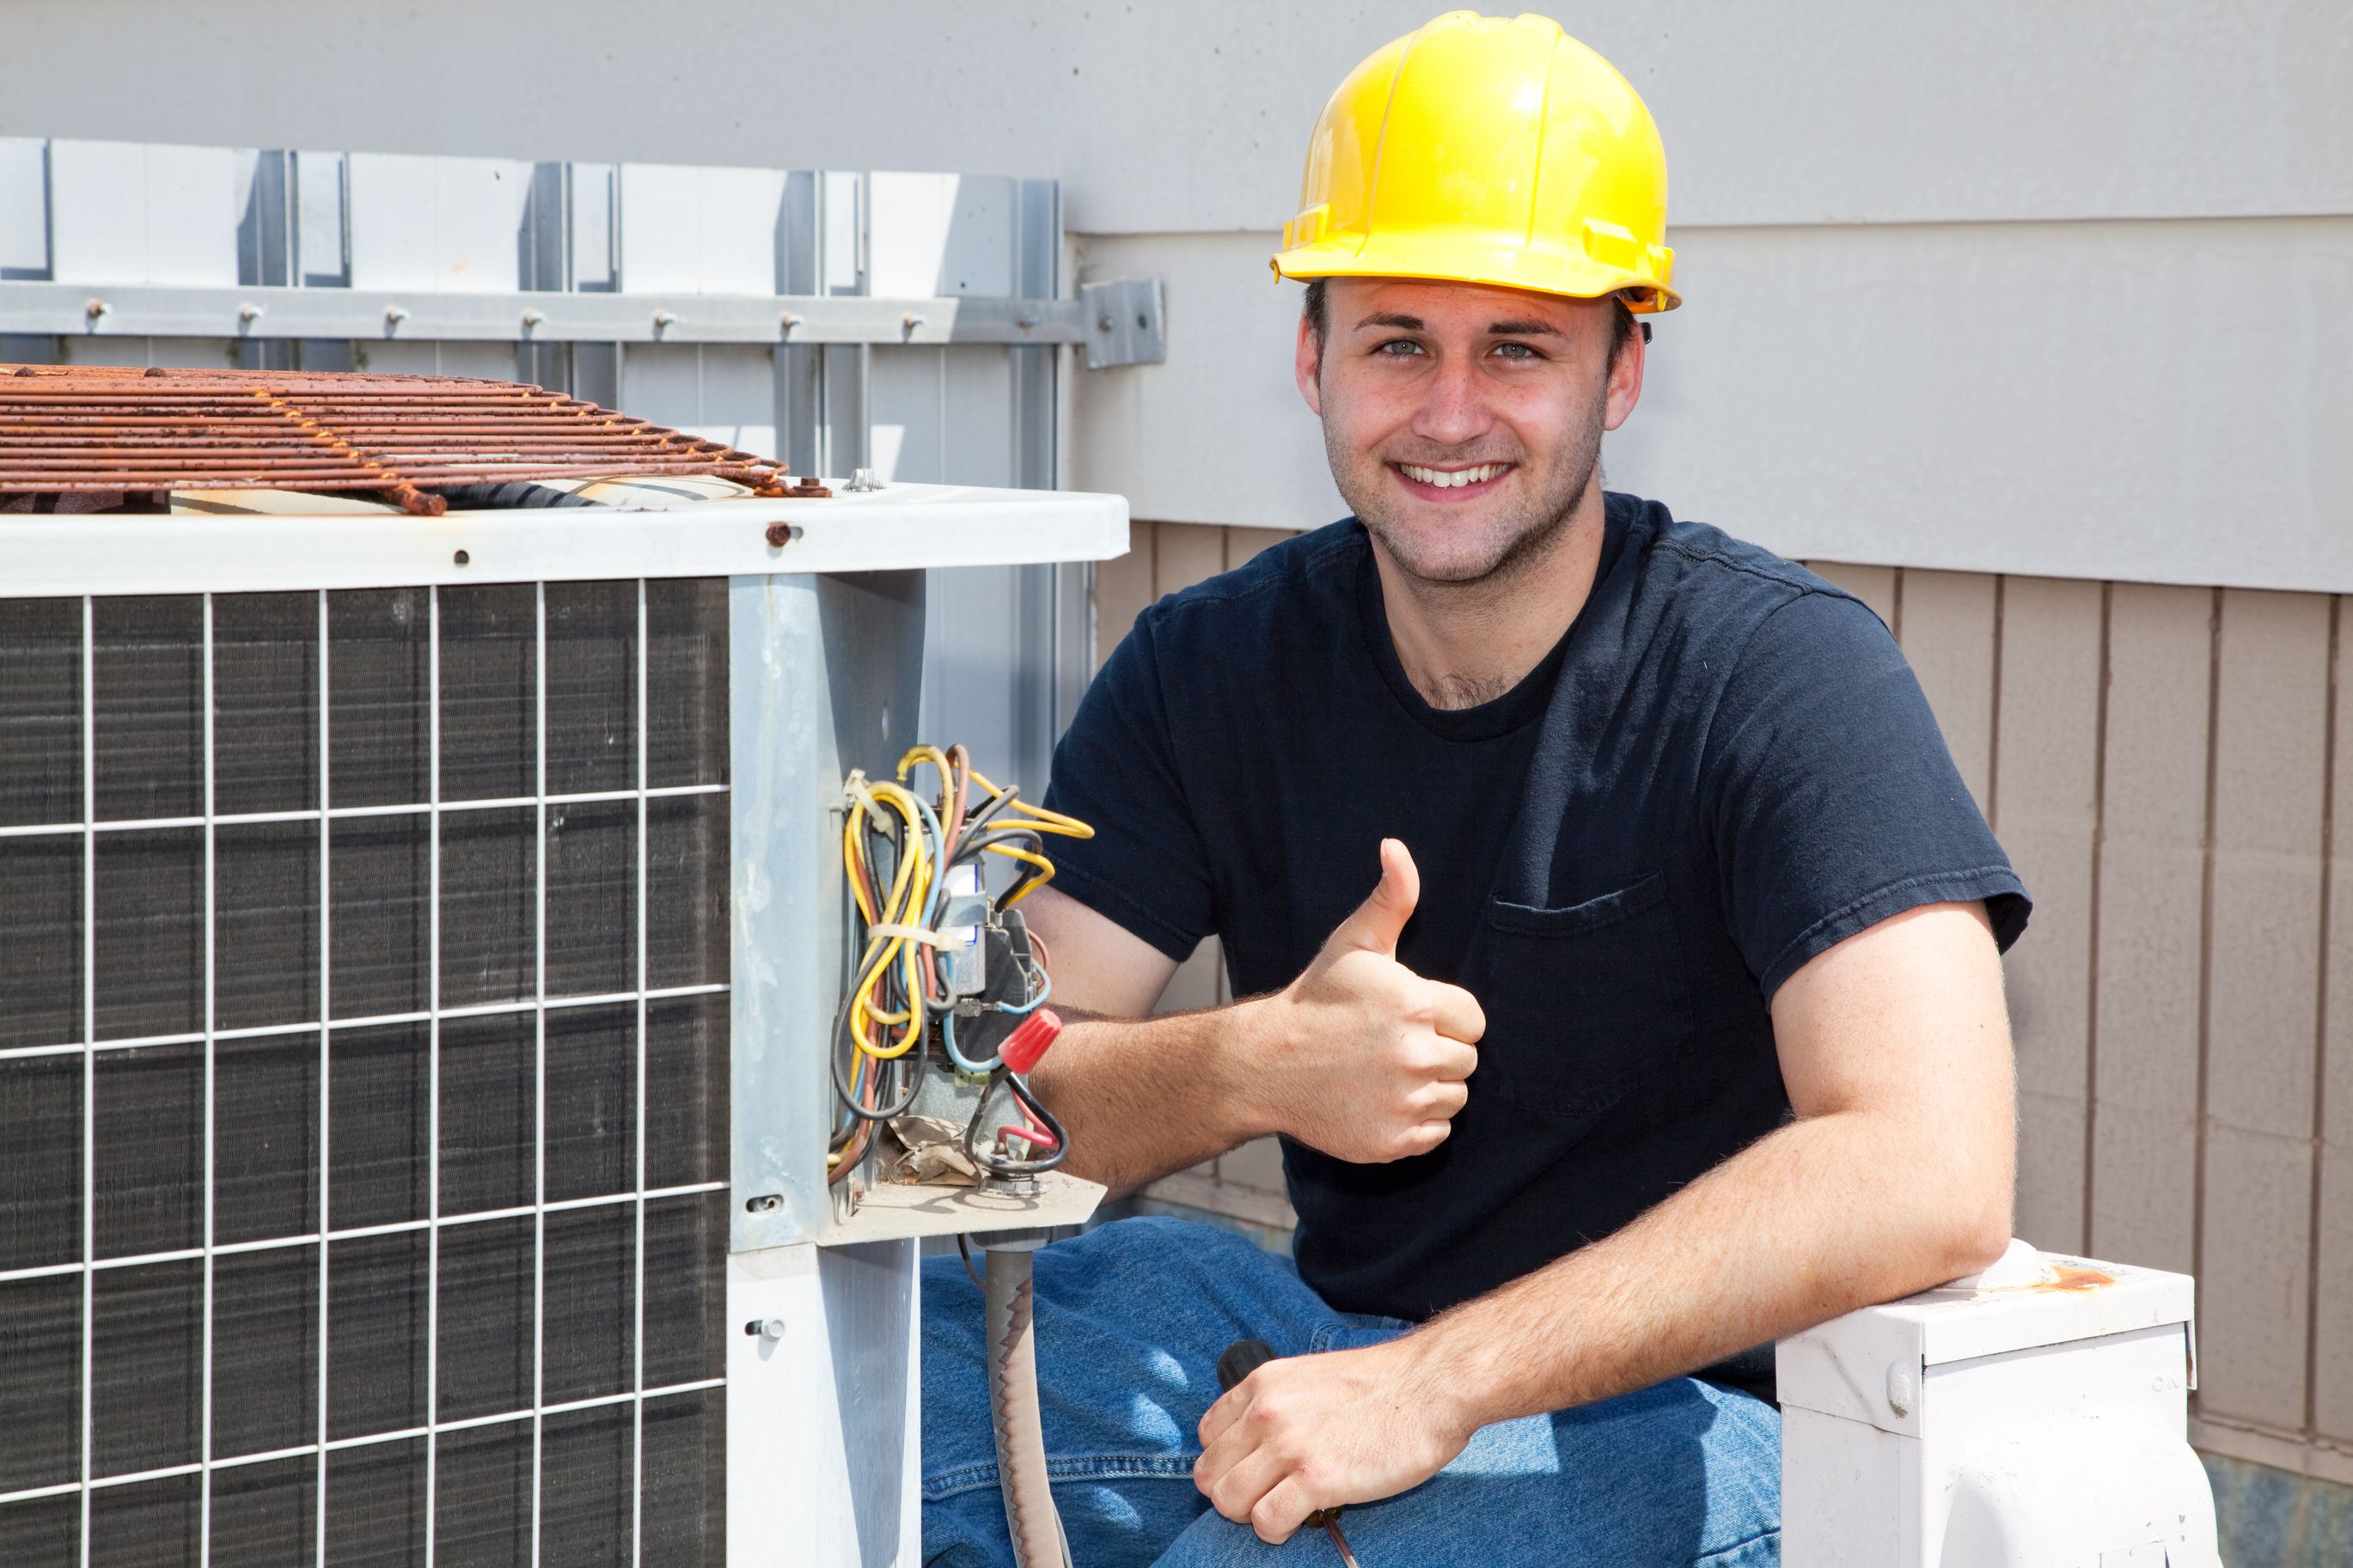 Are you searching for a new safety program or just an